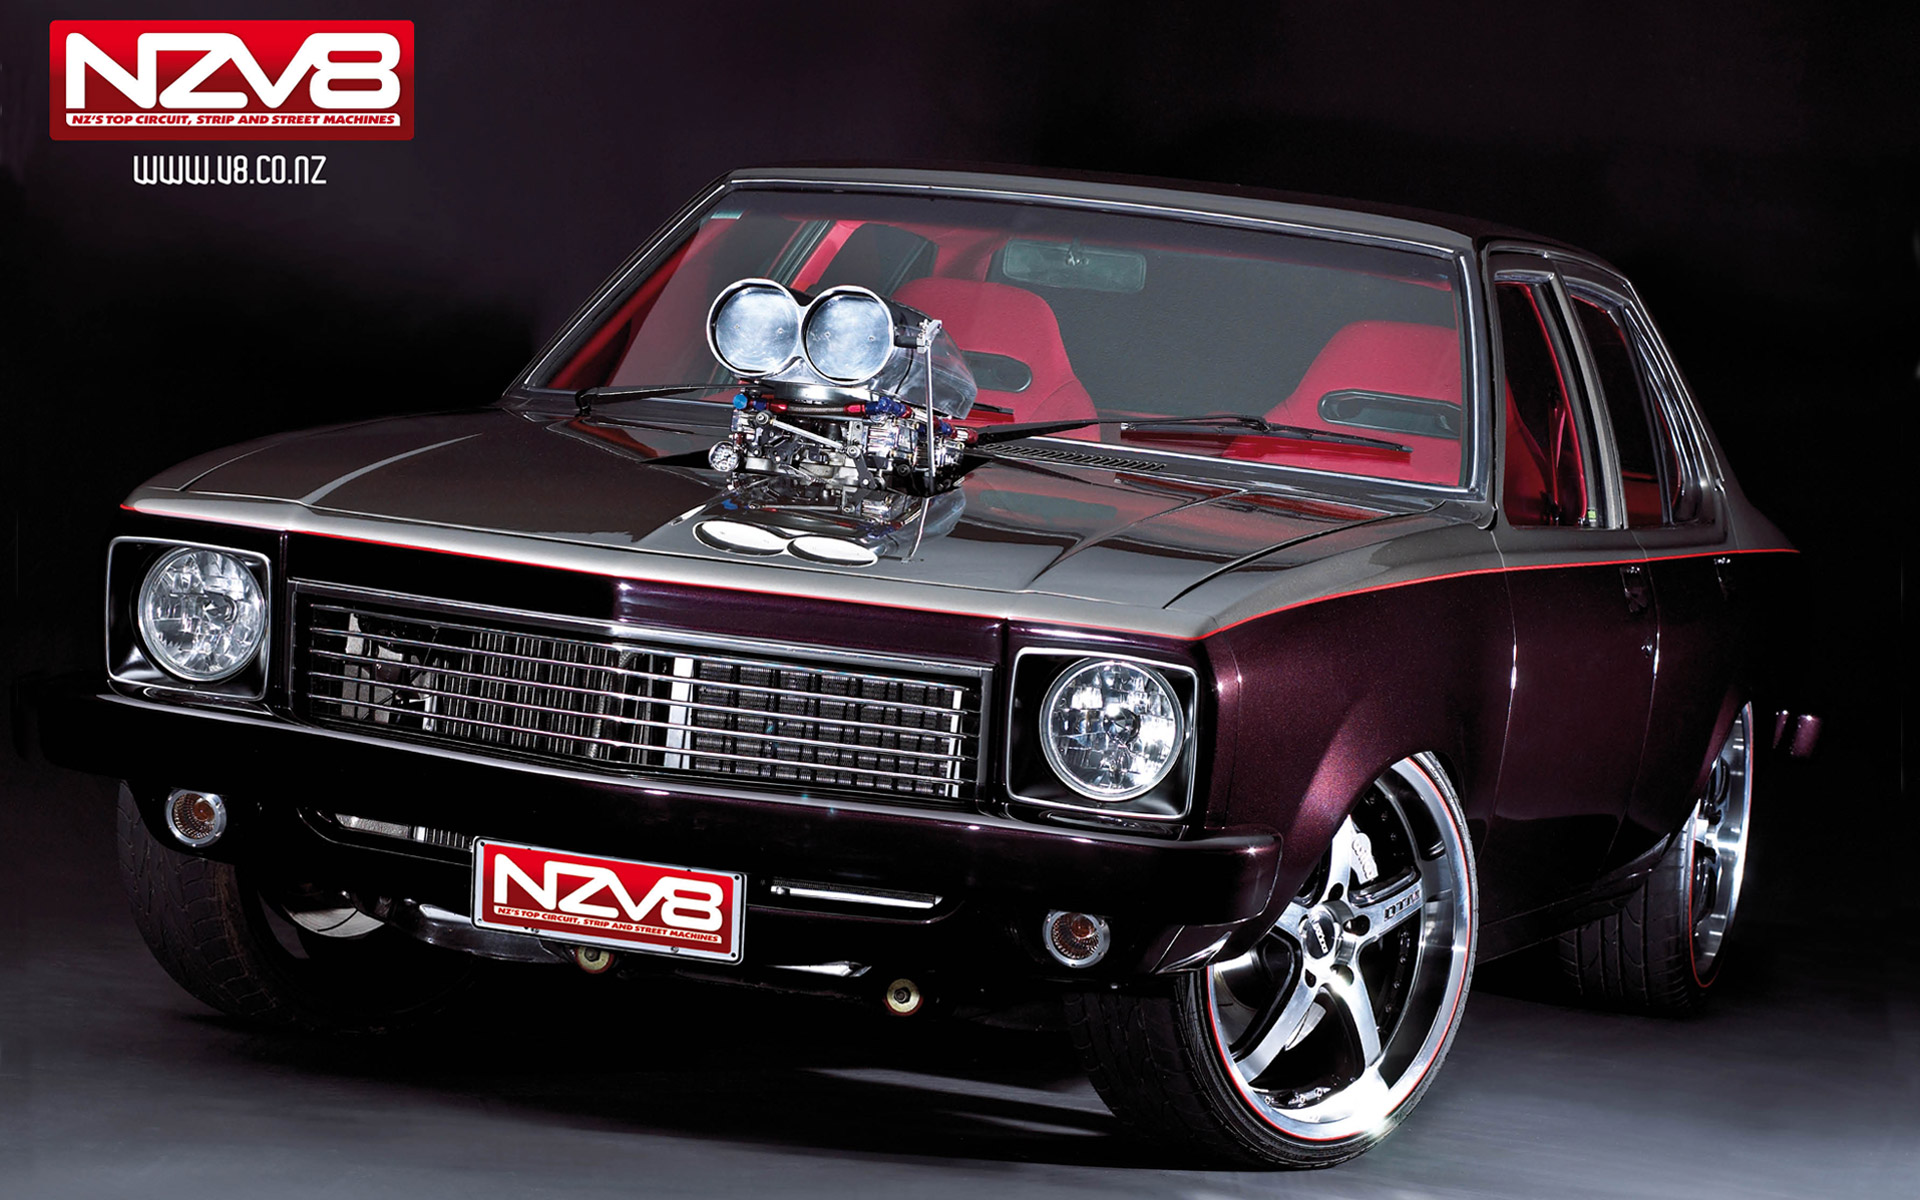 Cars Wallpapers: Background Images - Wallpaper Abyss